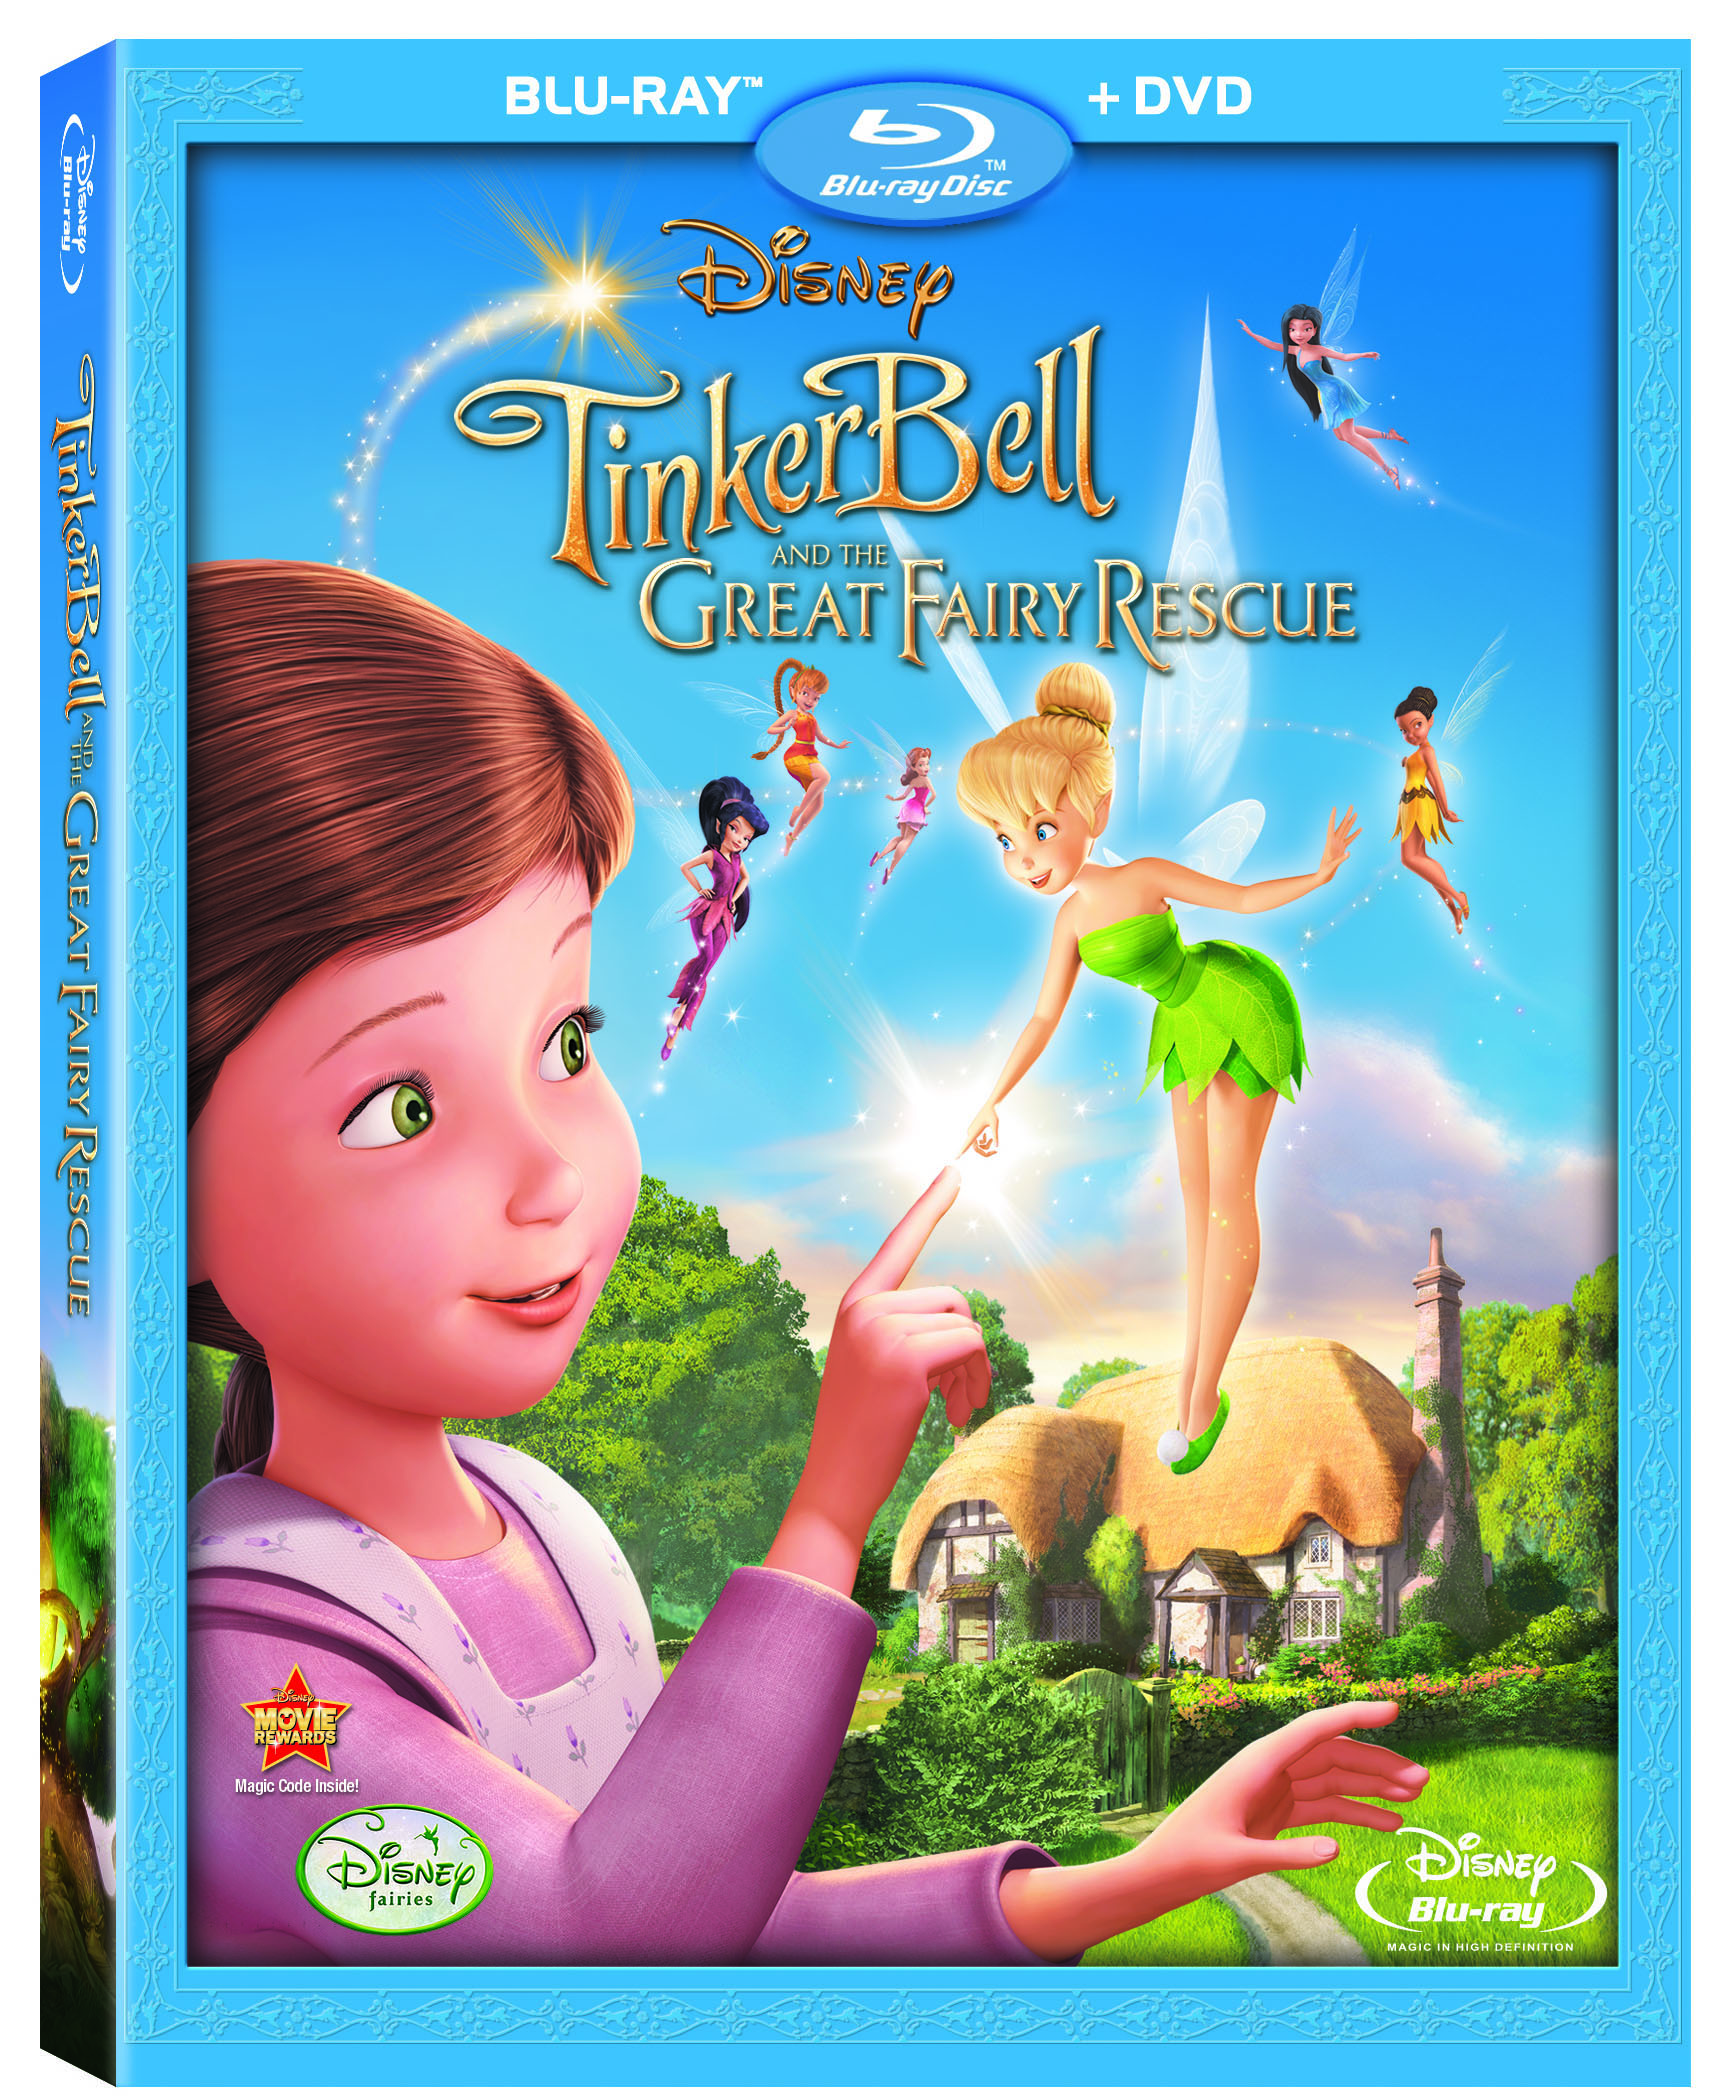 Think Tink: Disney's Tinker Bell and the Great Fairy Rescue